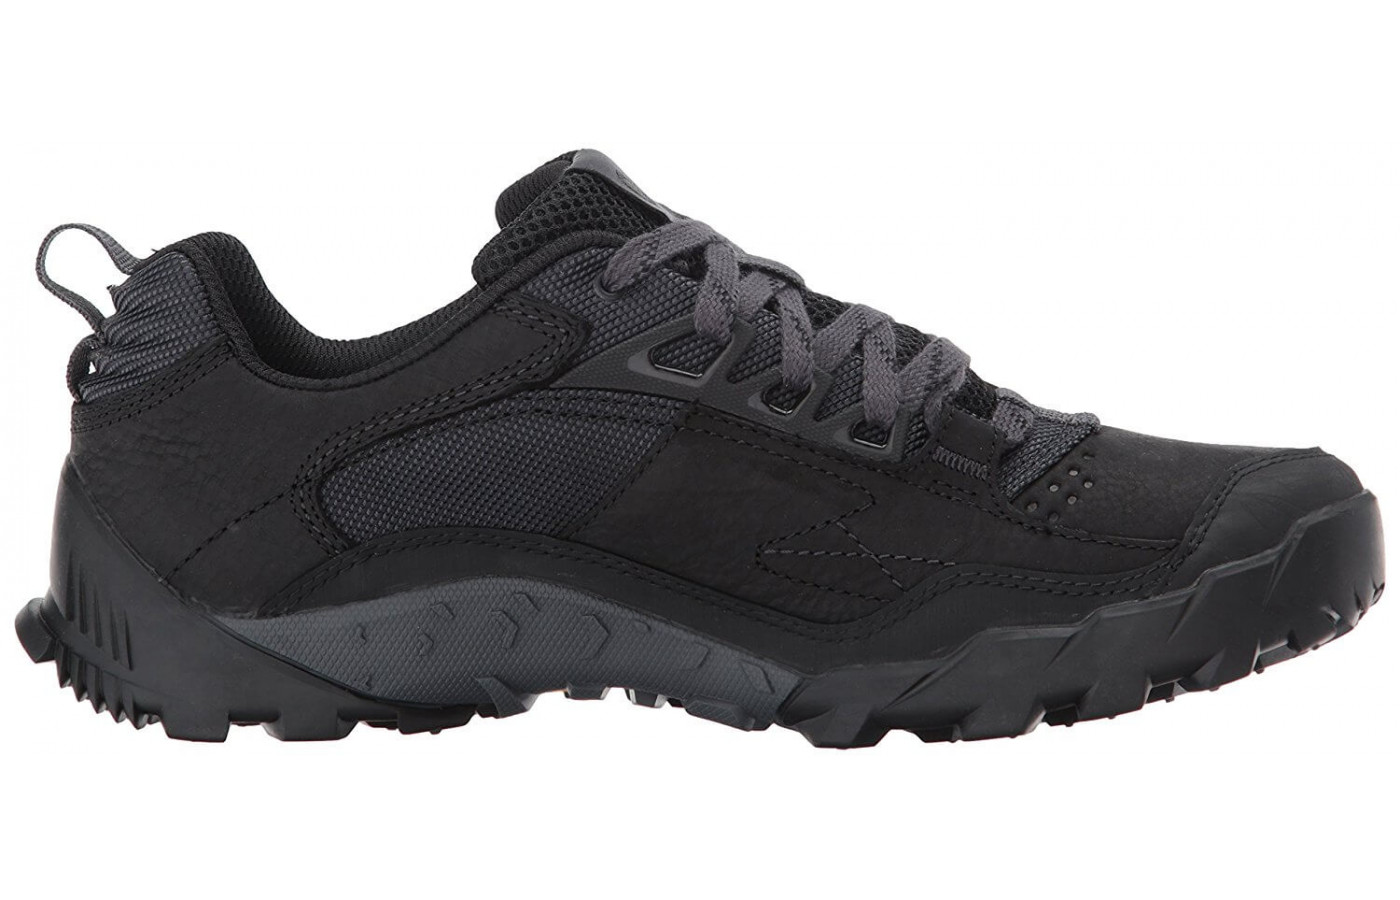 The Merrell Men's Annex Trak Low Shoe is best for hiking